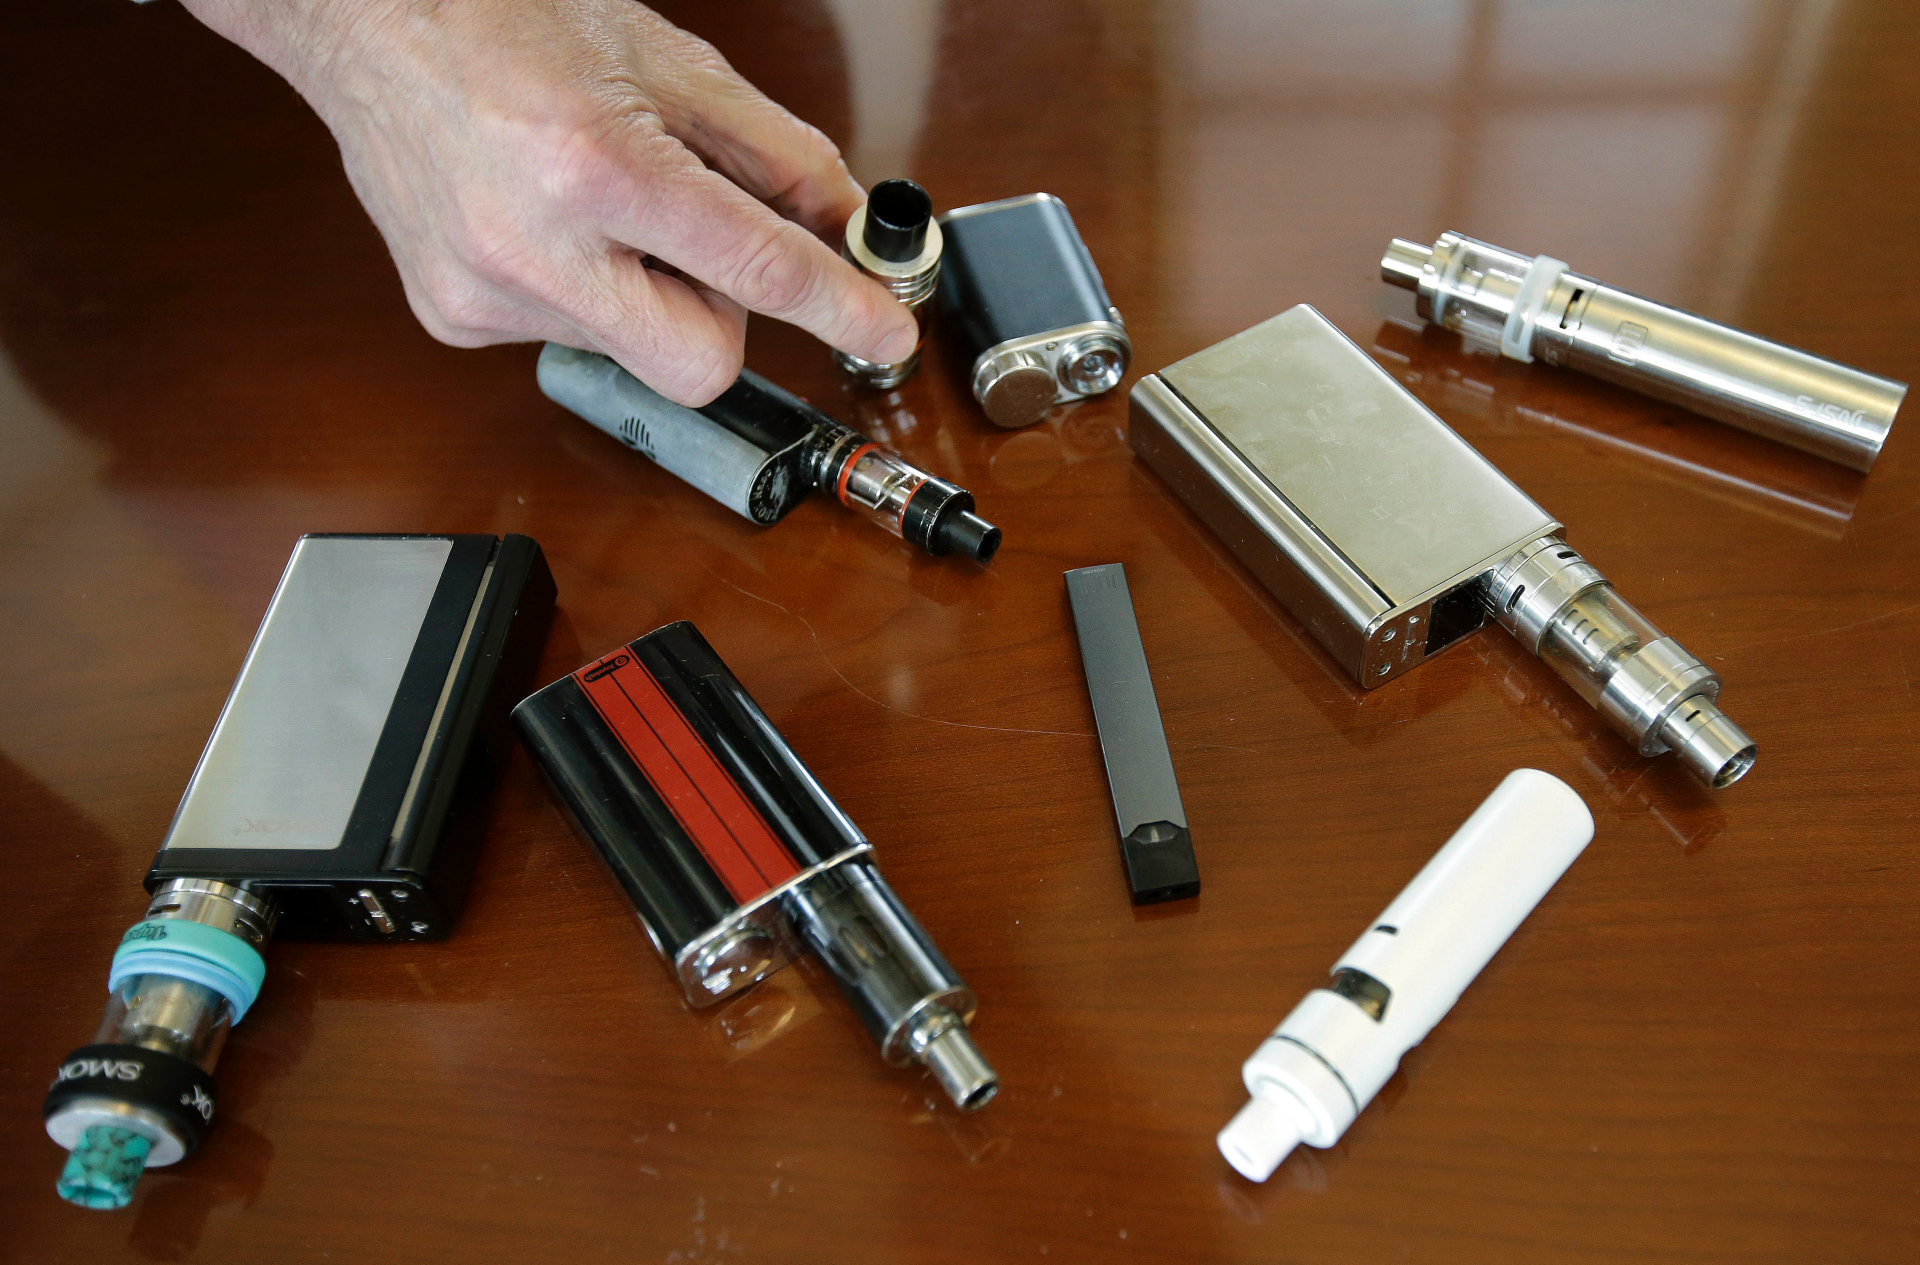 Westlake Legal Group ContentBroker_contentid-fd4cbecc226d458f931a2c68b1133f5e San Francisco may become first US city to ban sales of e-cigarettes fox-news/politics/judiciary/state-and-local fox-news/health/respiratory-health/stop-smoking fox news fnc/health fnc article 4ac0b859-f379-51f2-adc1-1e64af55ed36